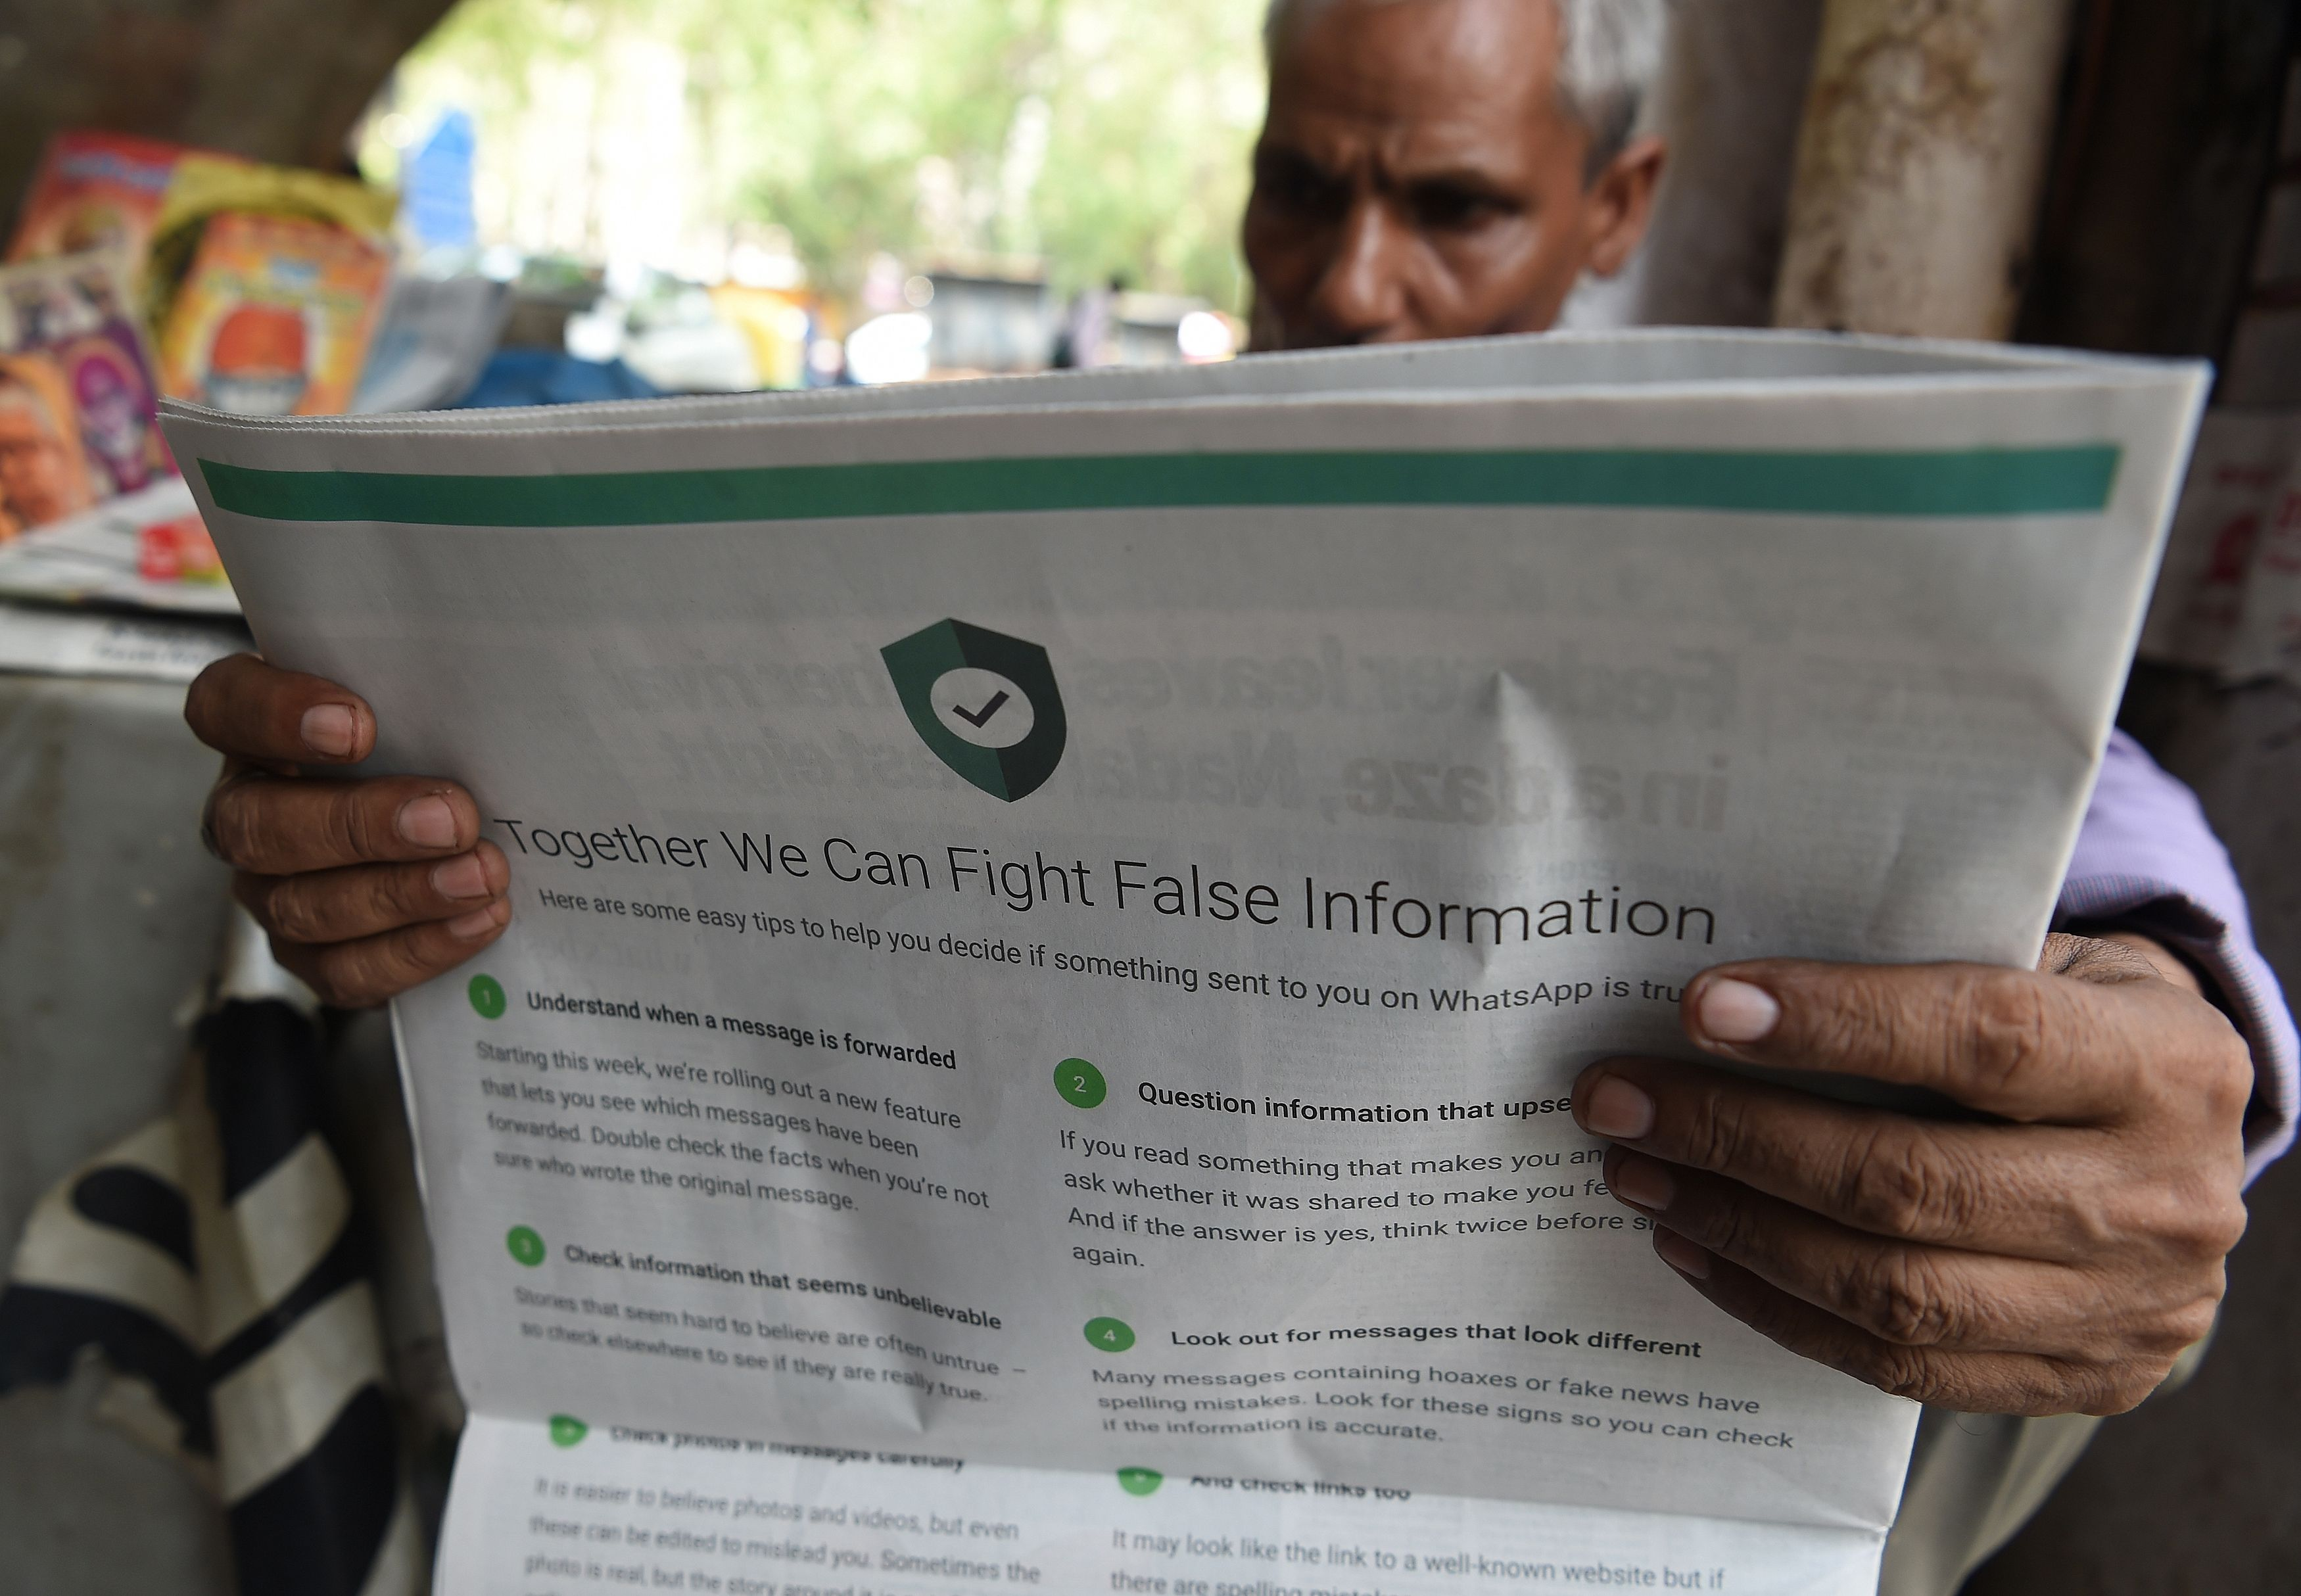 An Indian newspaper vendor reading a newspaper with a full back page advertisement from WhatsApp intended to counter fake information, in New Delhi on July 10, 2018.